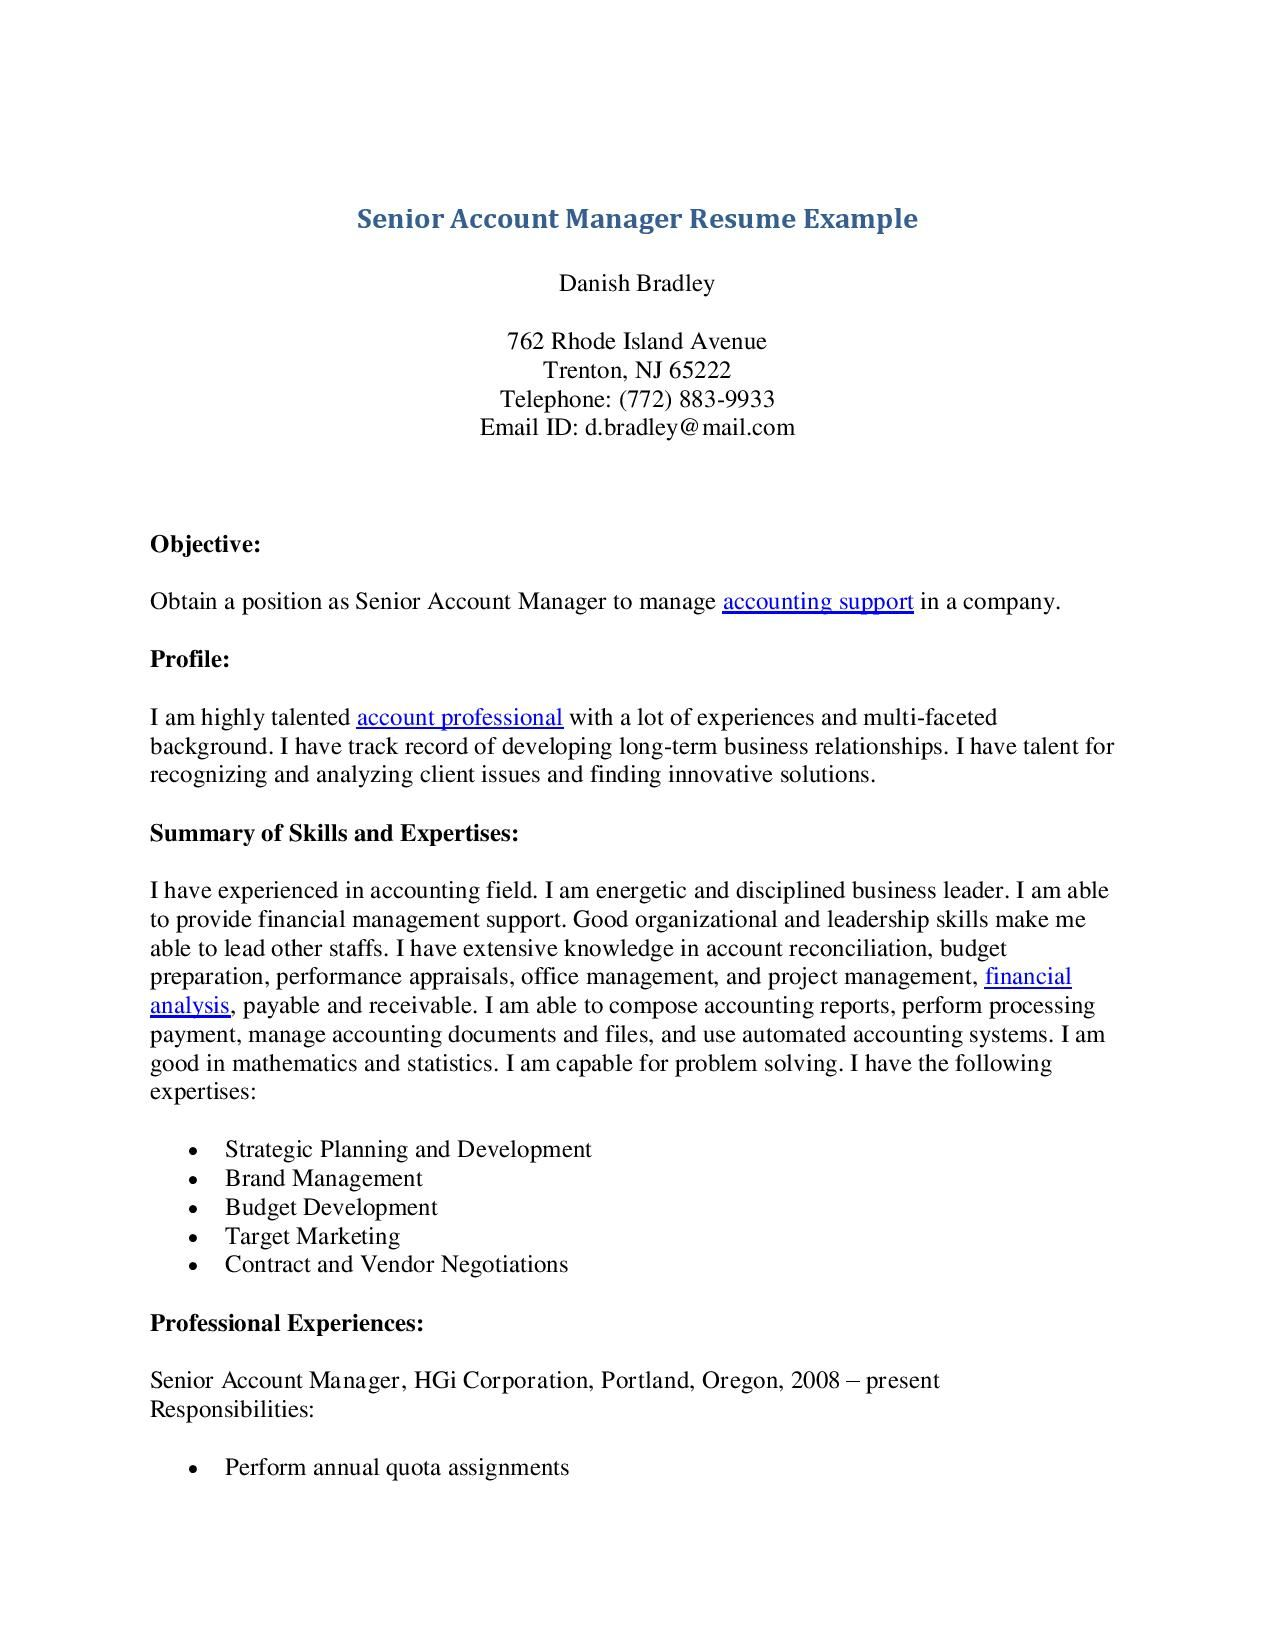 Senior Account Manager Resume Example - Senior Account Manager ...